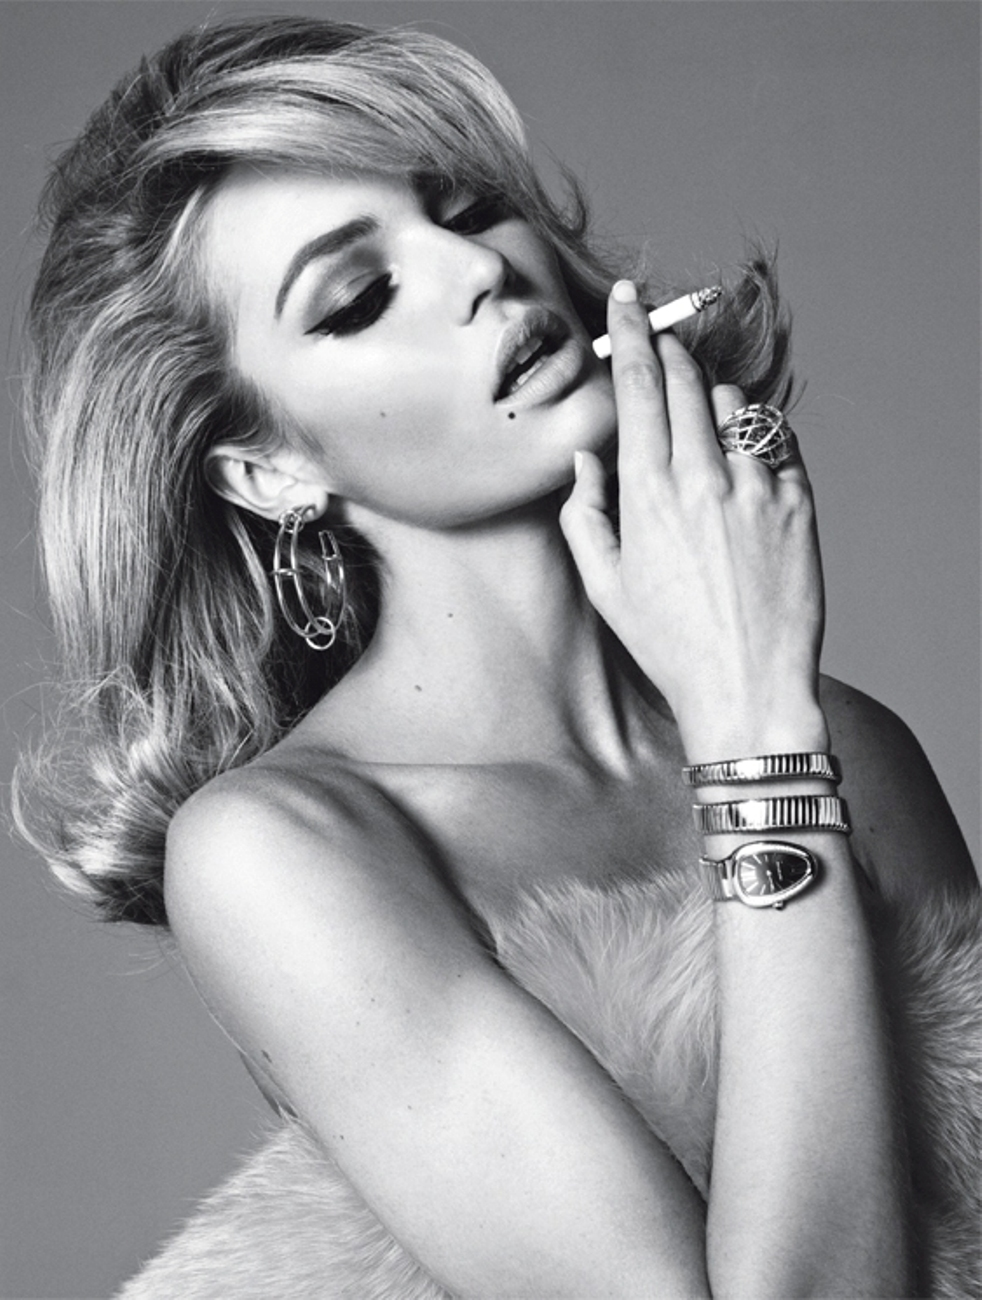 THE ORIGINAL – CANDICE SWANEPOEL BY STEVEN MEISEL